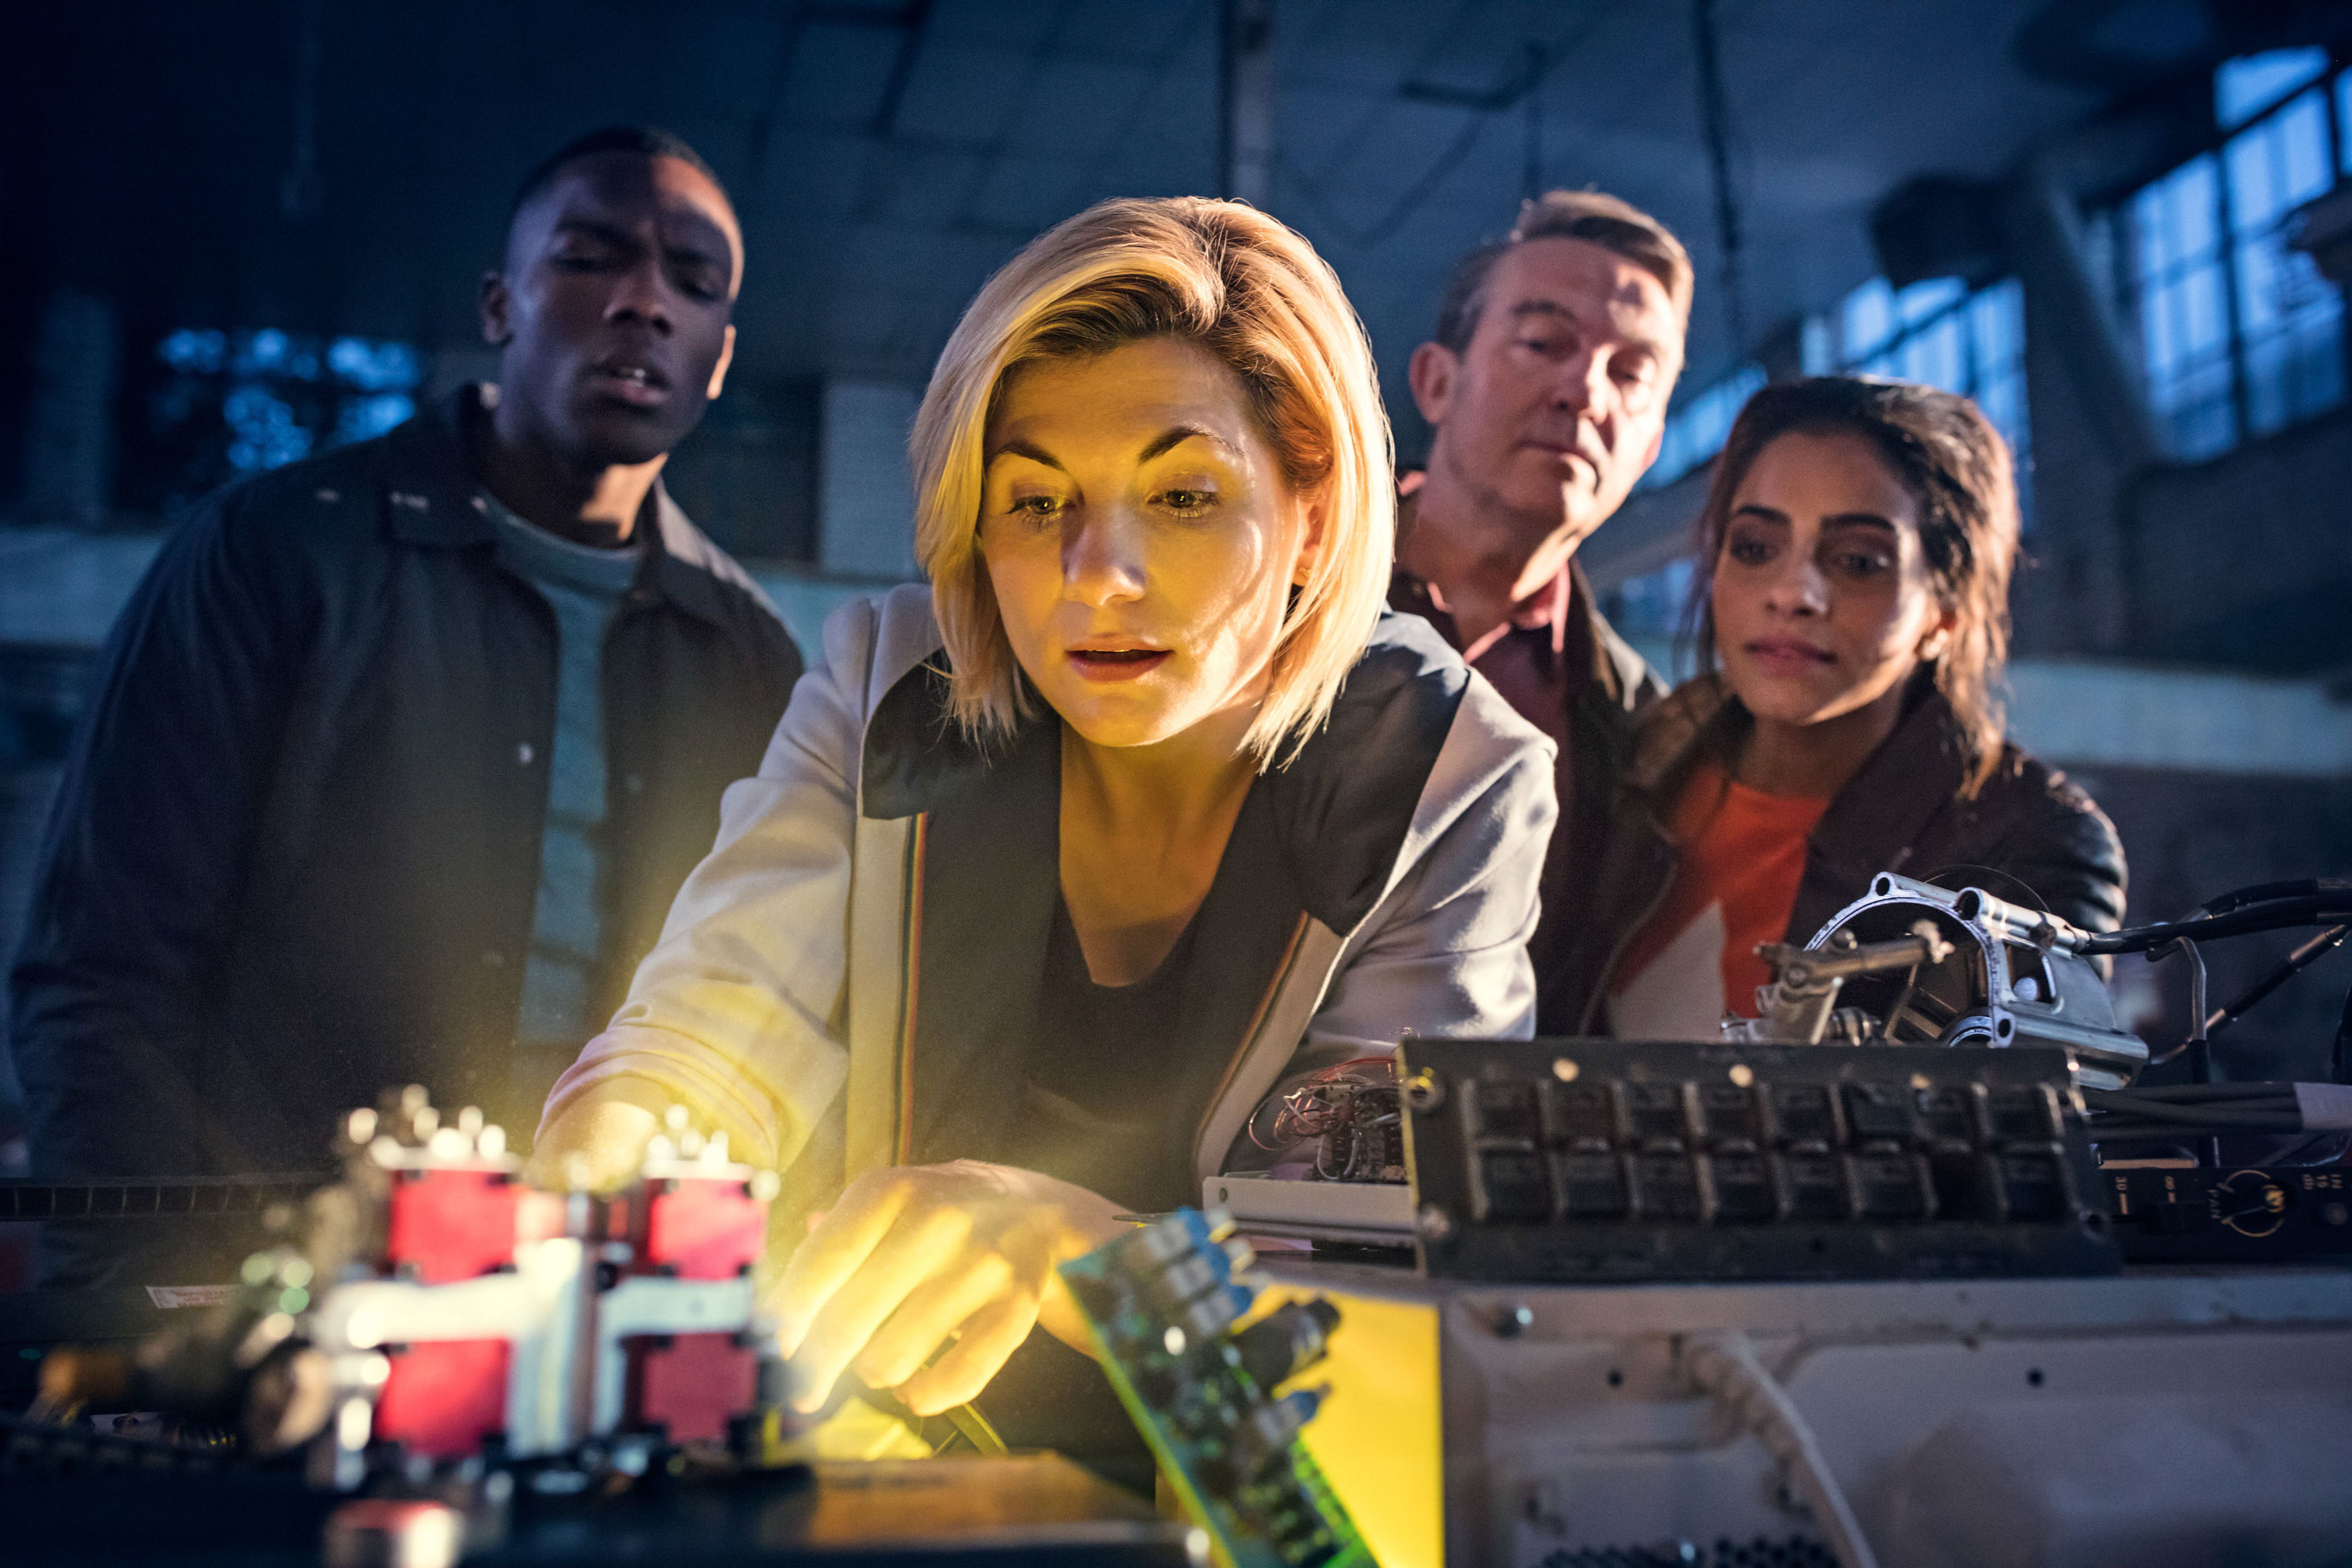 Jodie Whittaker as The Doctor (centre), Bradley Walsh as Graham (second right) and Mandip Gill as Yaz (first right) (Sophie Mutevelian/PA Wire)